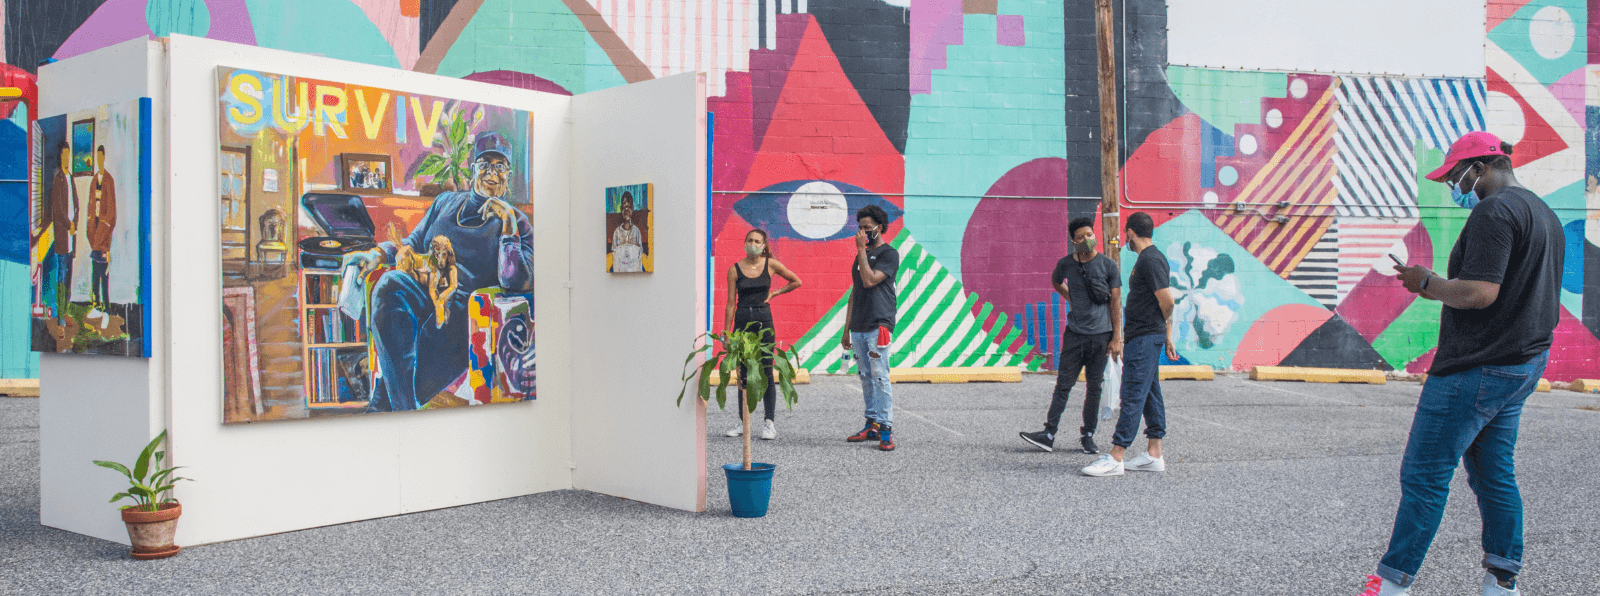 Five people in front of a mural and in a parking lot looking at paintings installed on a free standing white wall